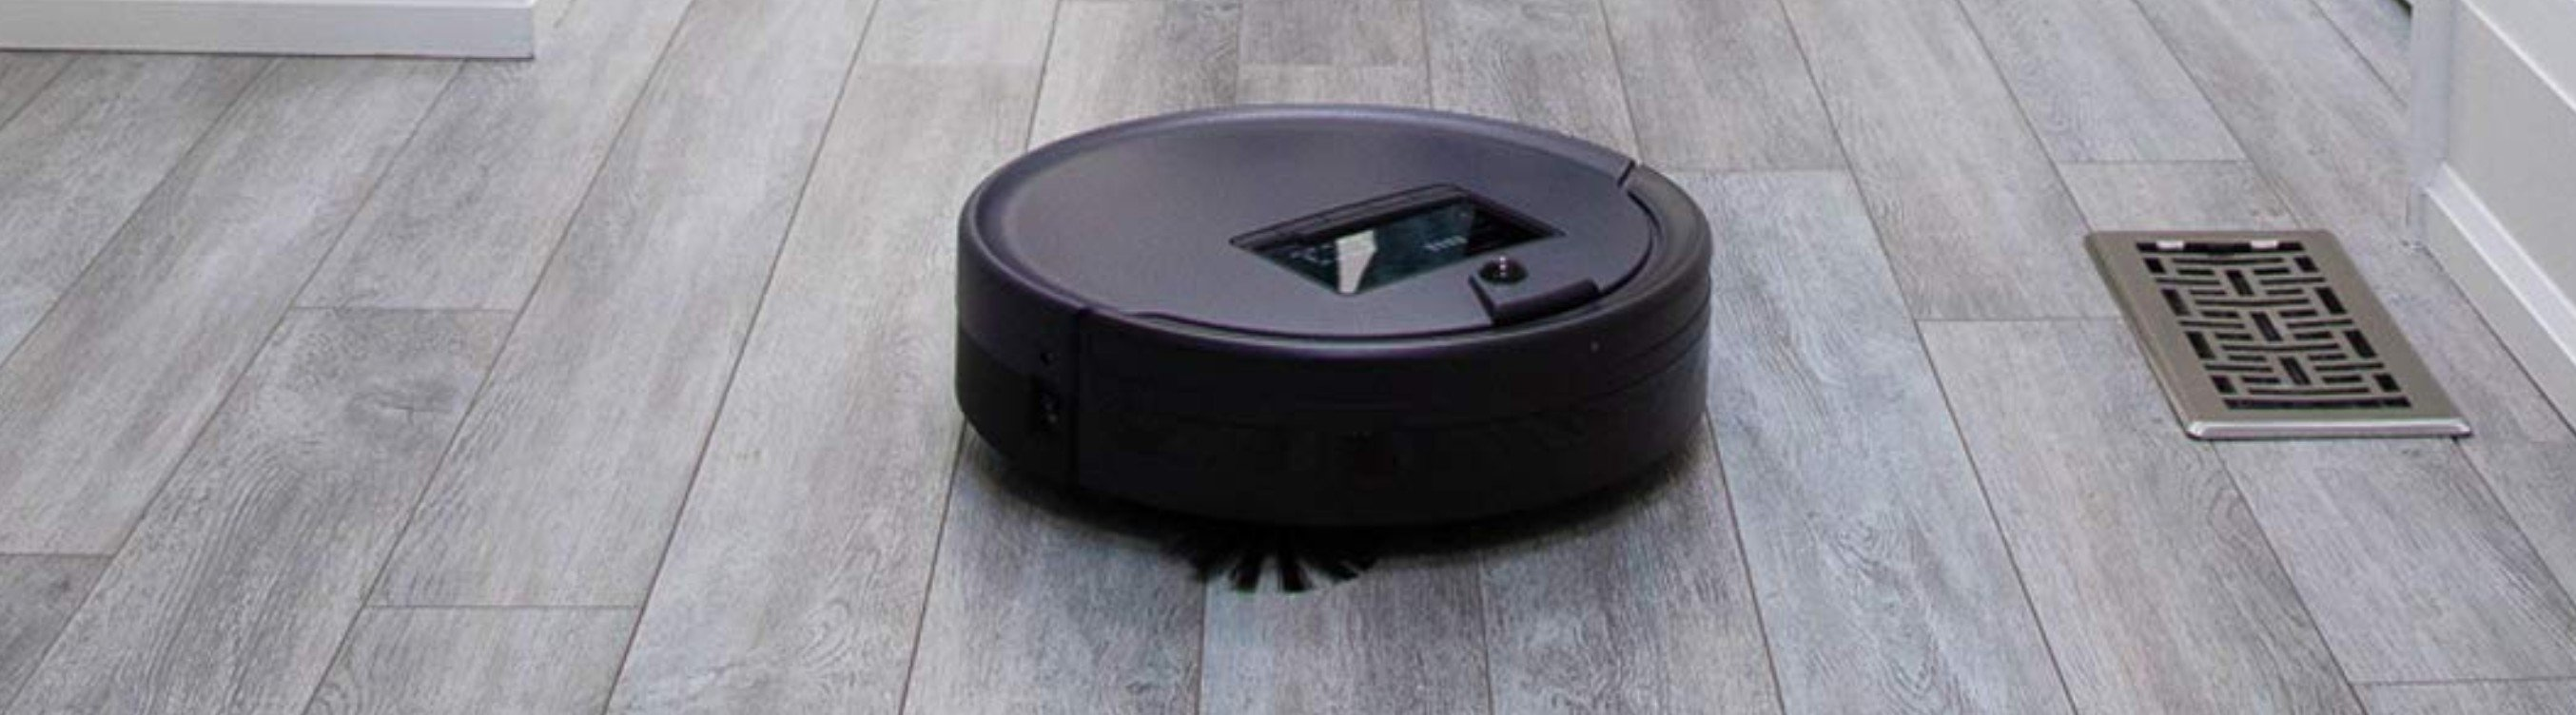 Bobsweep Pet Hair Plus Robotic Vacuum Cleaner And Mop Review